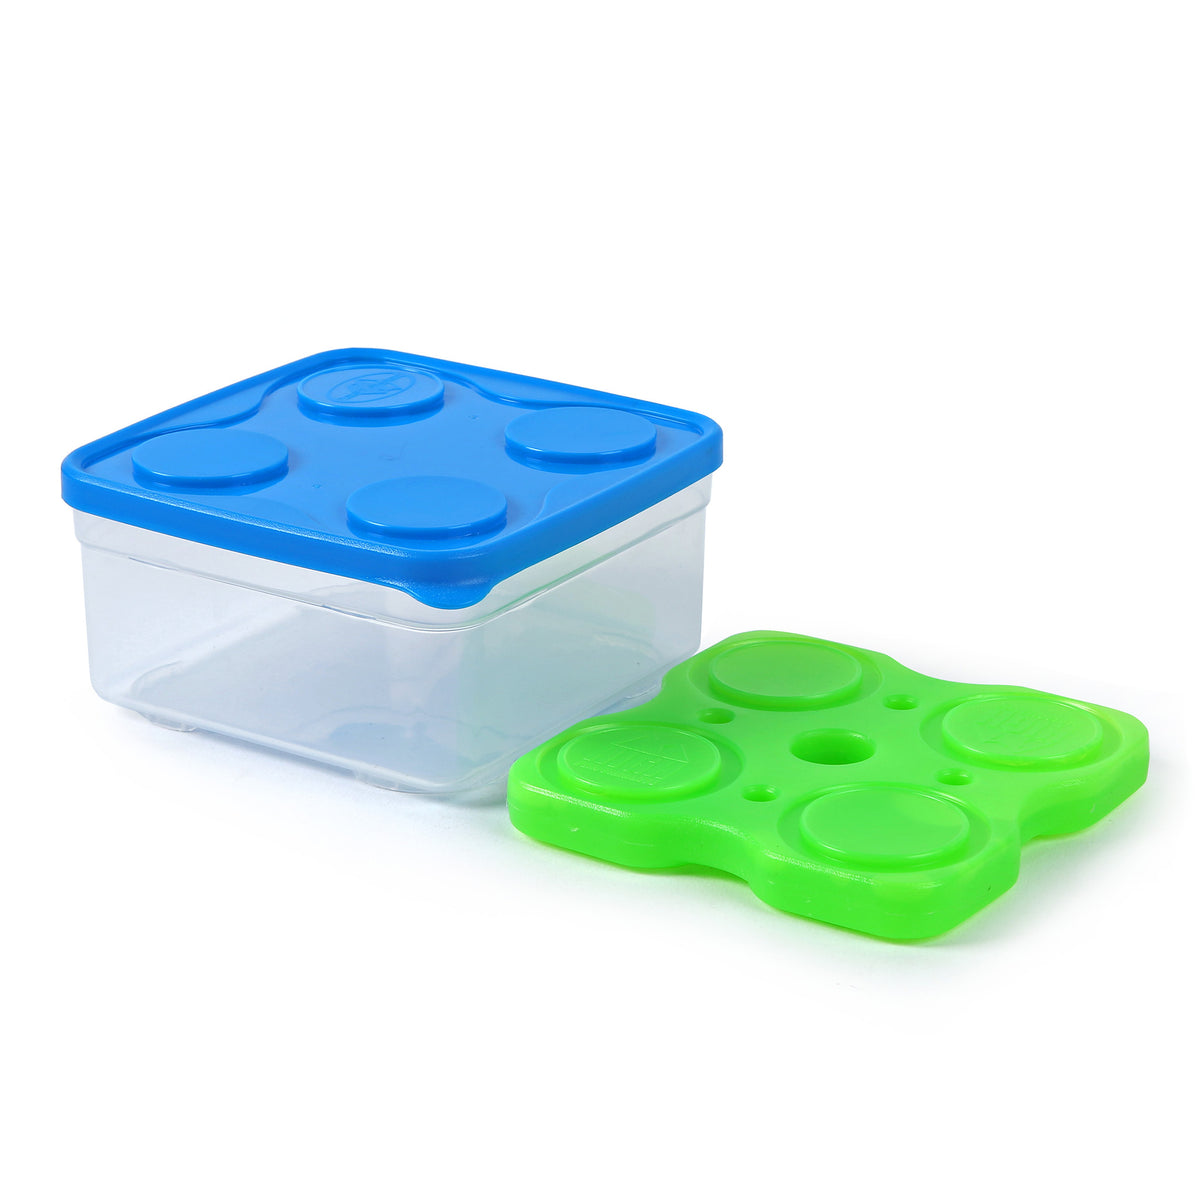 Interlockers 3 Piece Sandwich Set - Container and ice brick